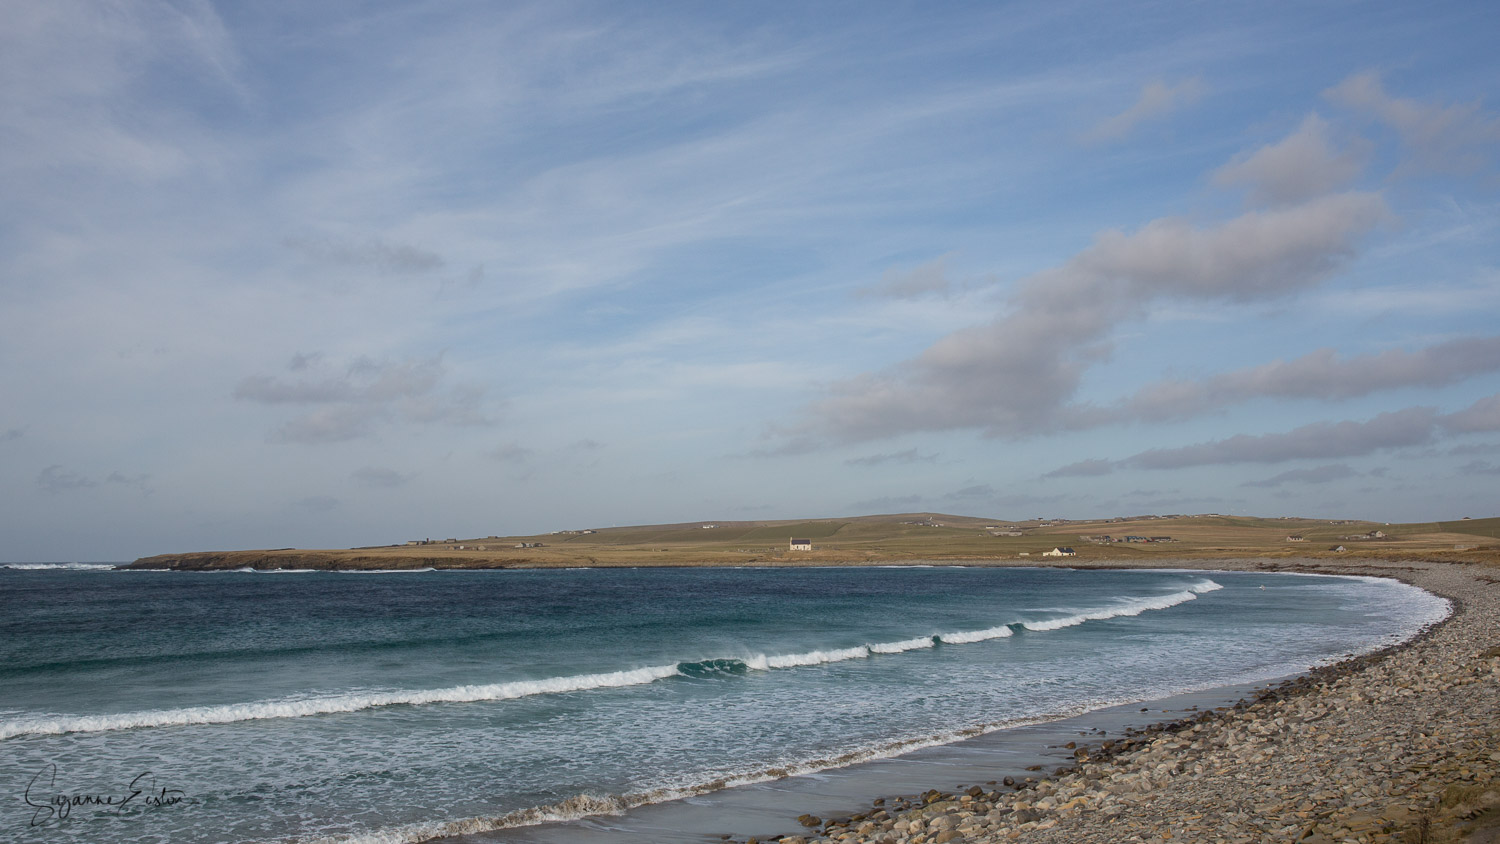 Bay of Skaill a sweeping beach